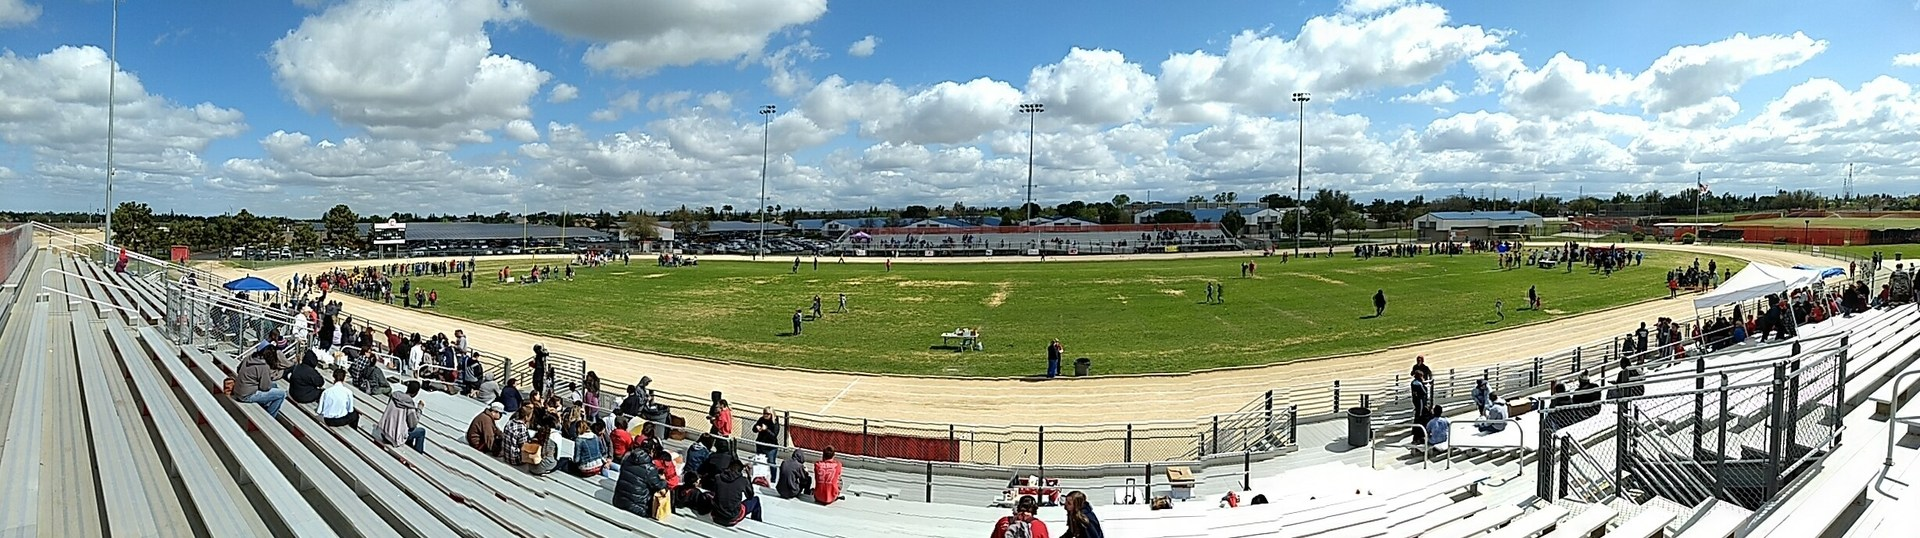 Centennial High School Track Meet